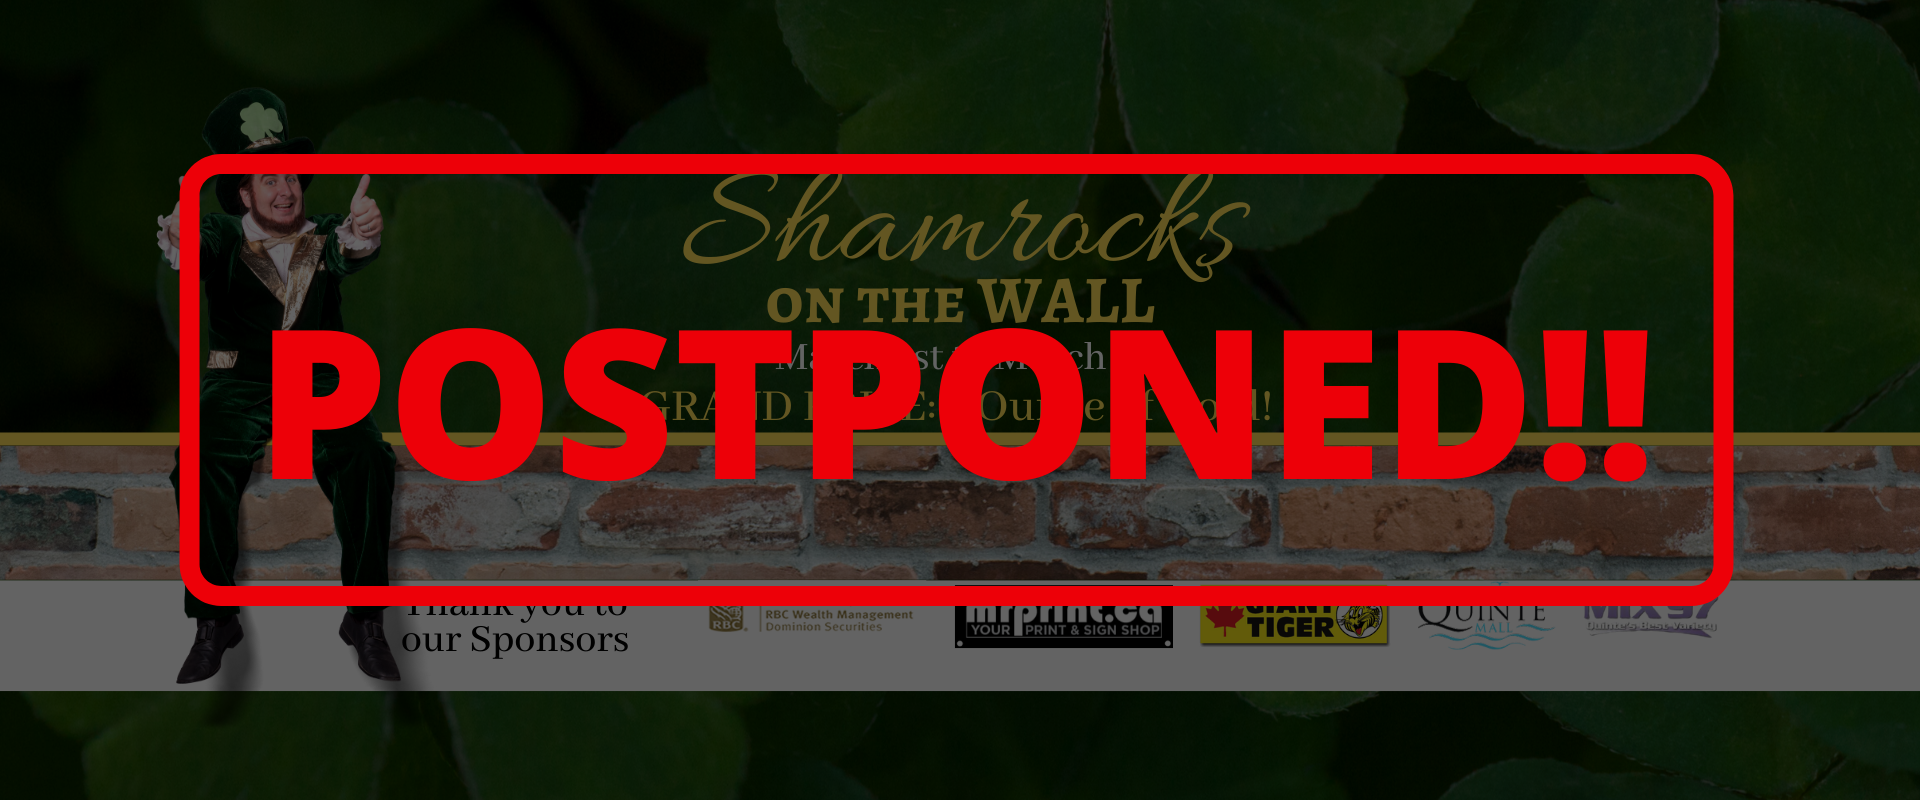 Shamrocks on the Wall event is POSTPONED until further notice